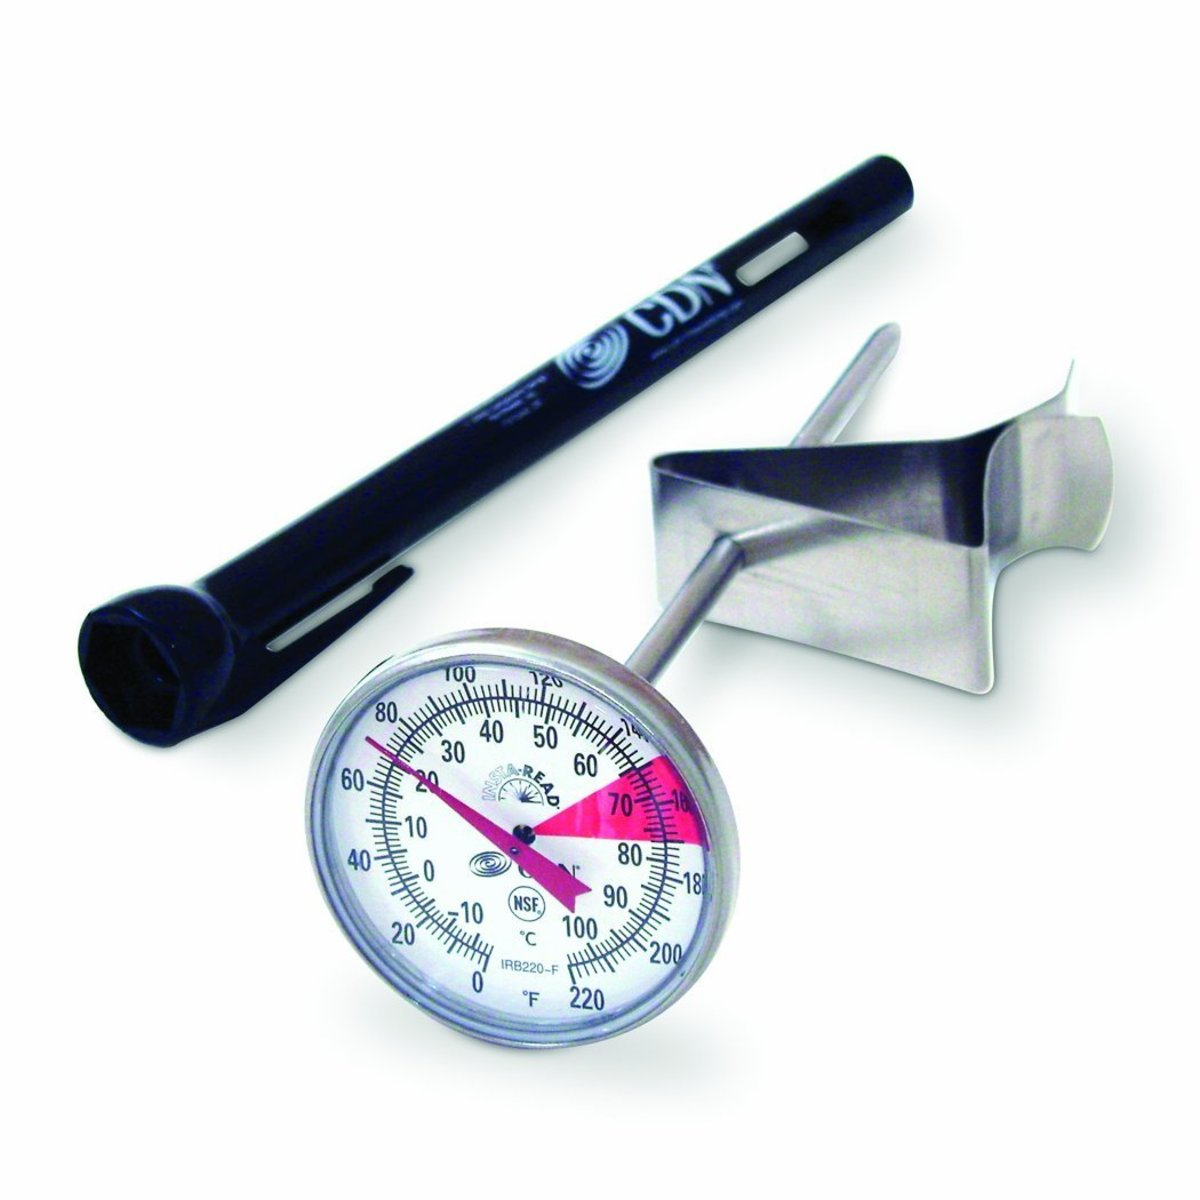 The CDN IRB220-F ProAccurate Insta-Read is an ideal device for use with a smaller frothing pitcher.  It's easy to read and accurate dial won't get in the way of your wand and the CDN IRB220-F won't take up too much space in your kitchen drawer.